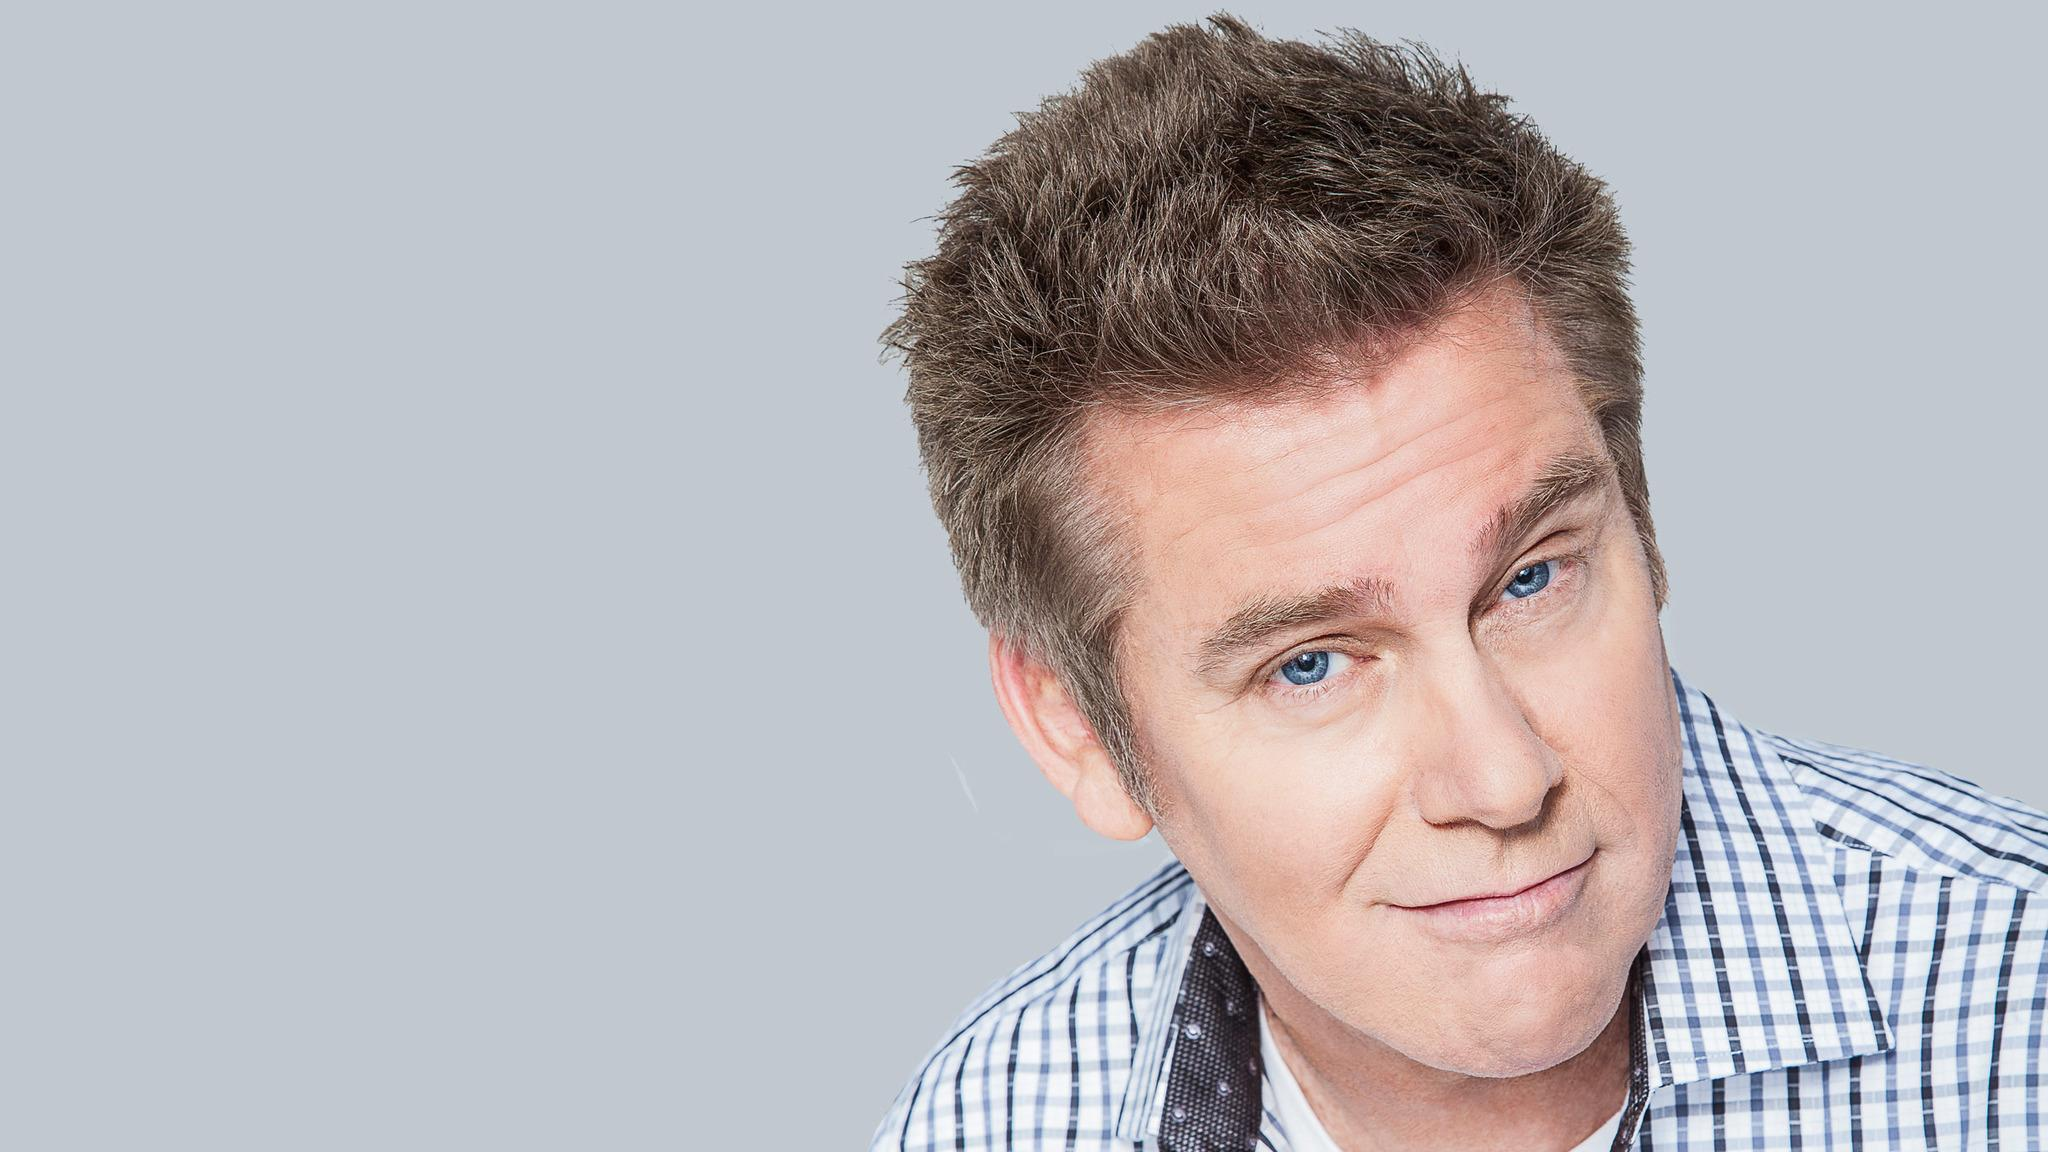 Brian Regan at Riverside Park Amphitheater